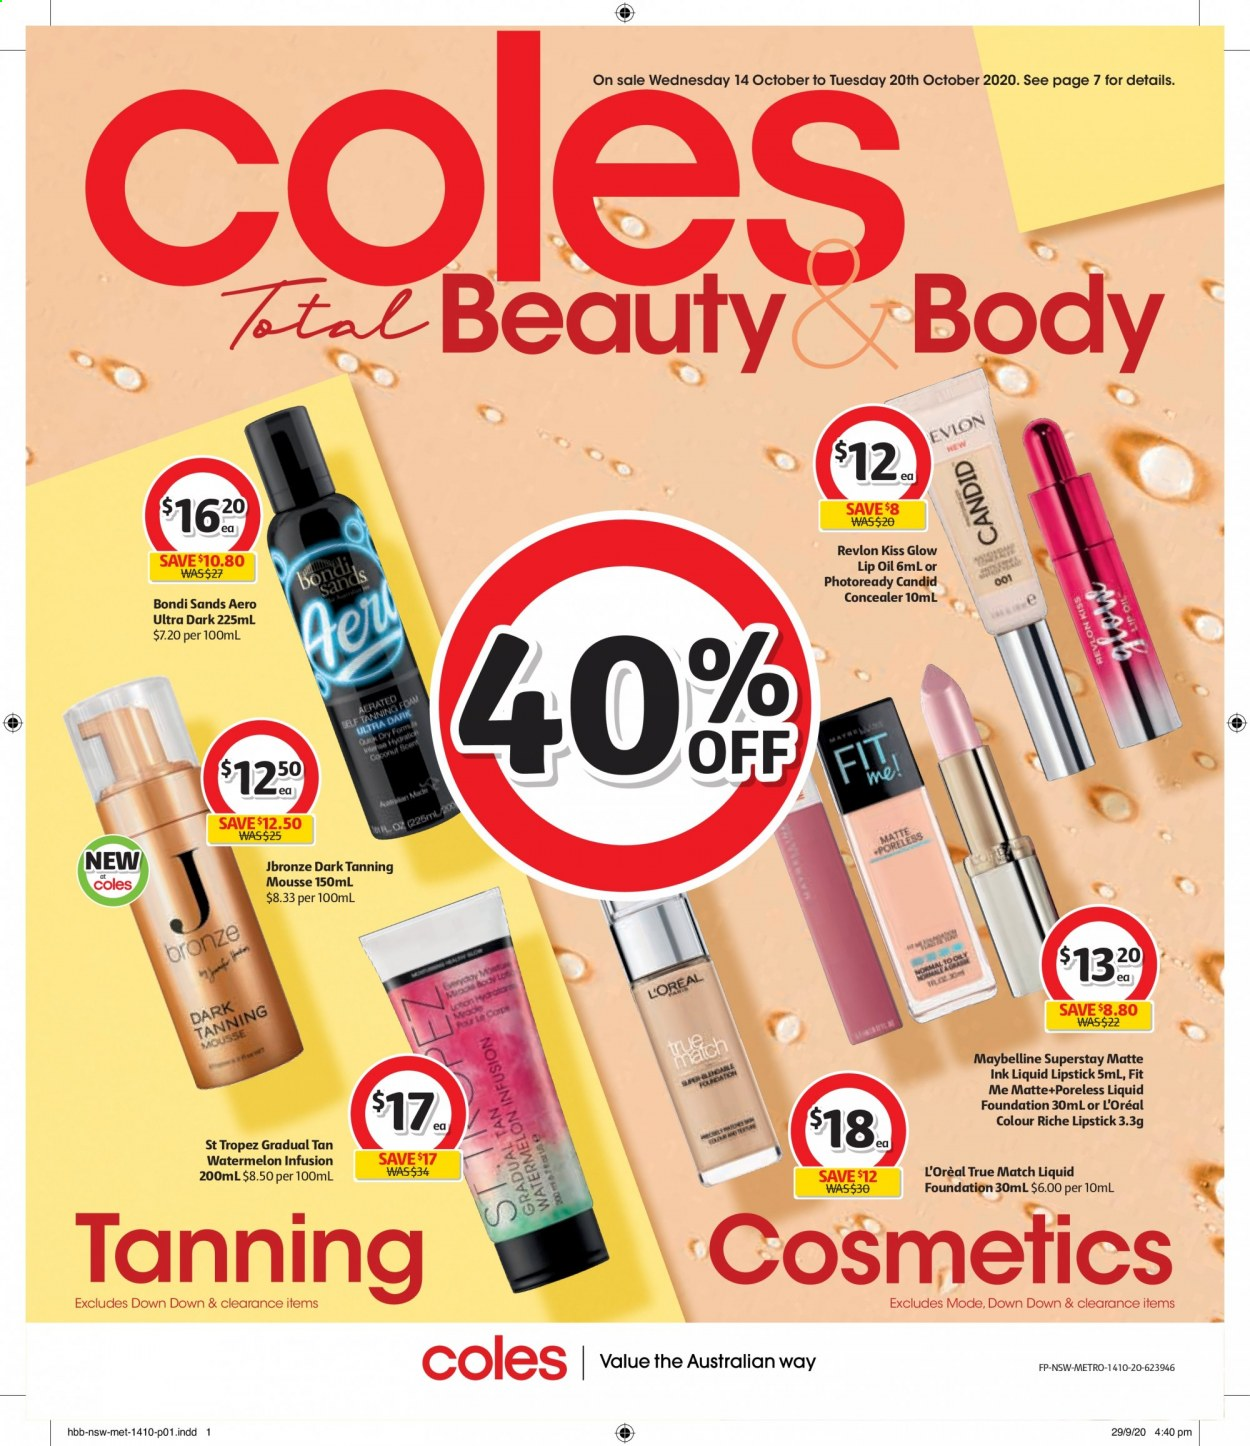 Coles Catalogue - 14.10.2020 - 20.10.2020 - Sales products - concealer, l'oréal, lipstick, maybelline, revlon, watermelon, coconut, cosmetics, liquid, oil, self tanning foam, foundation, metro. Page 1.